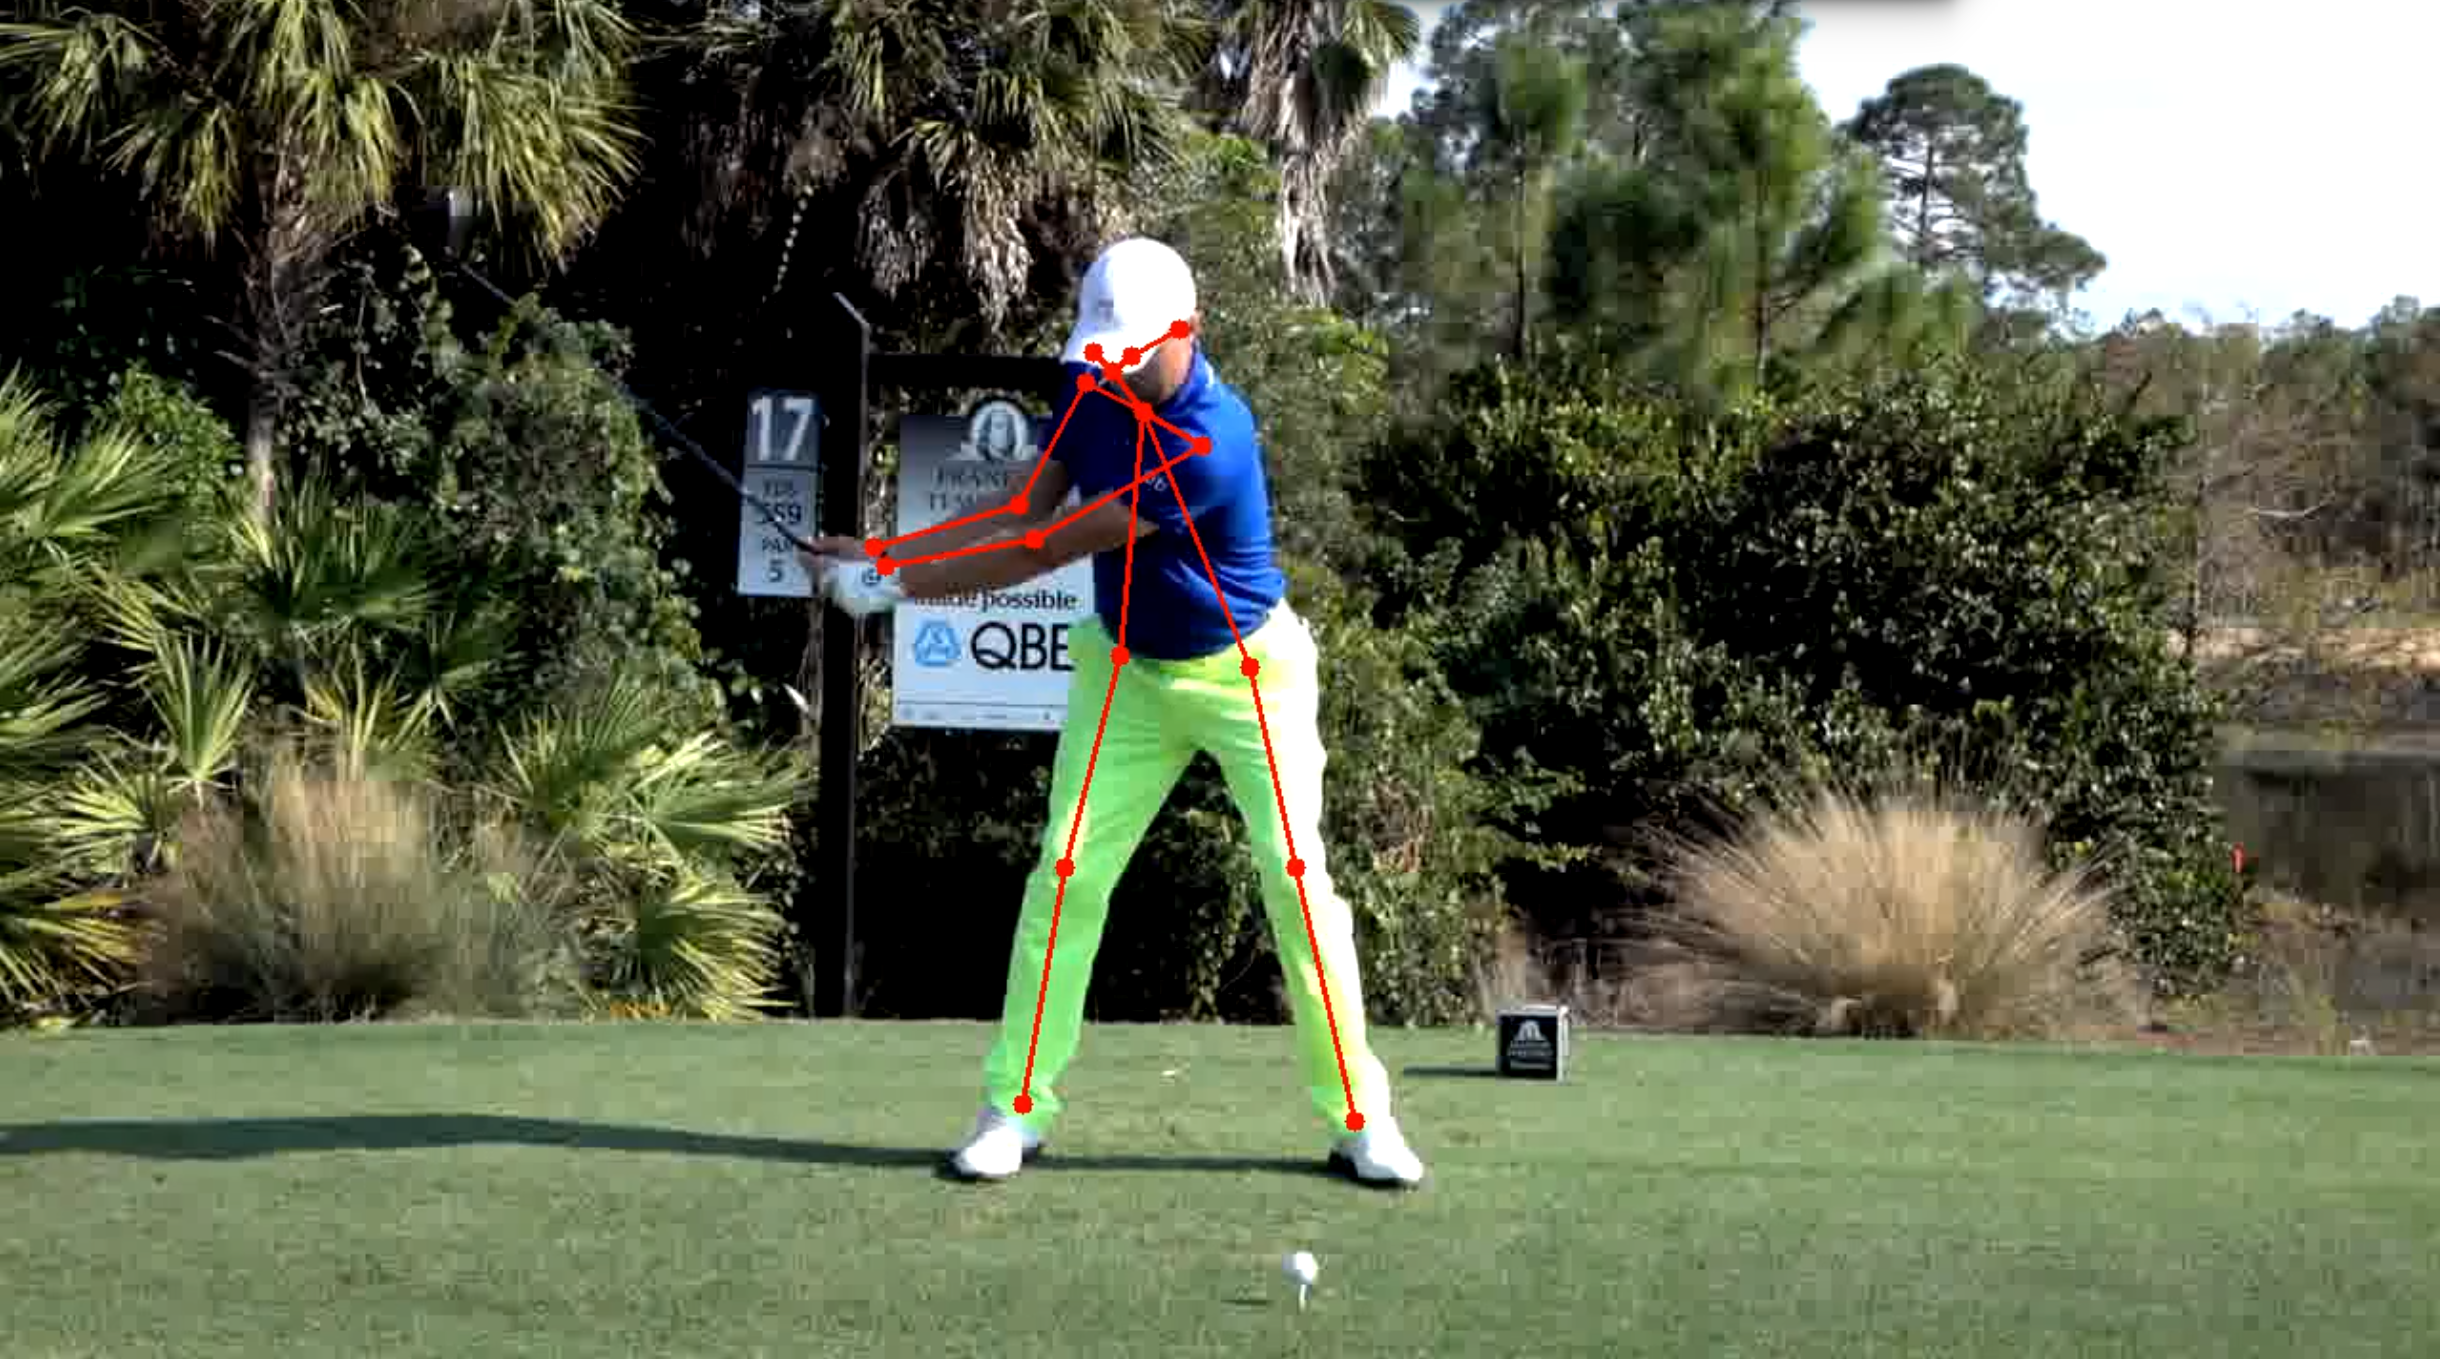 horschelsep golf vs md video billy sam phil swing snead channel blackmar horschel analysis